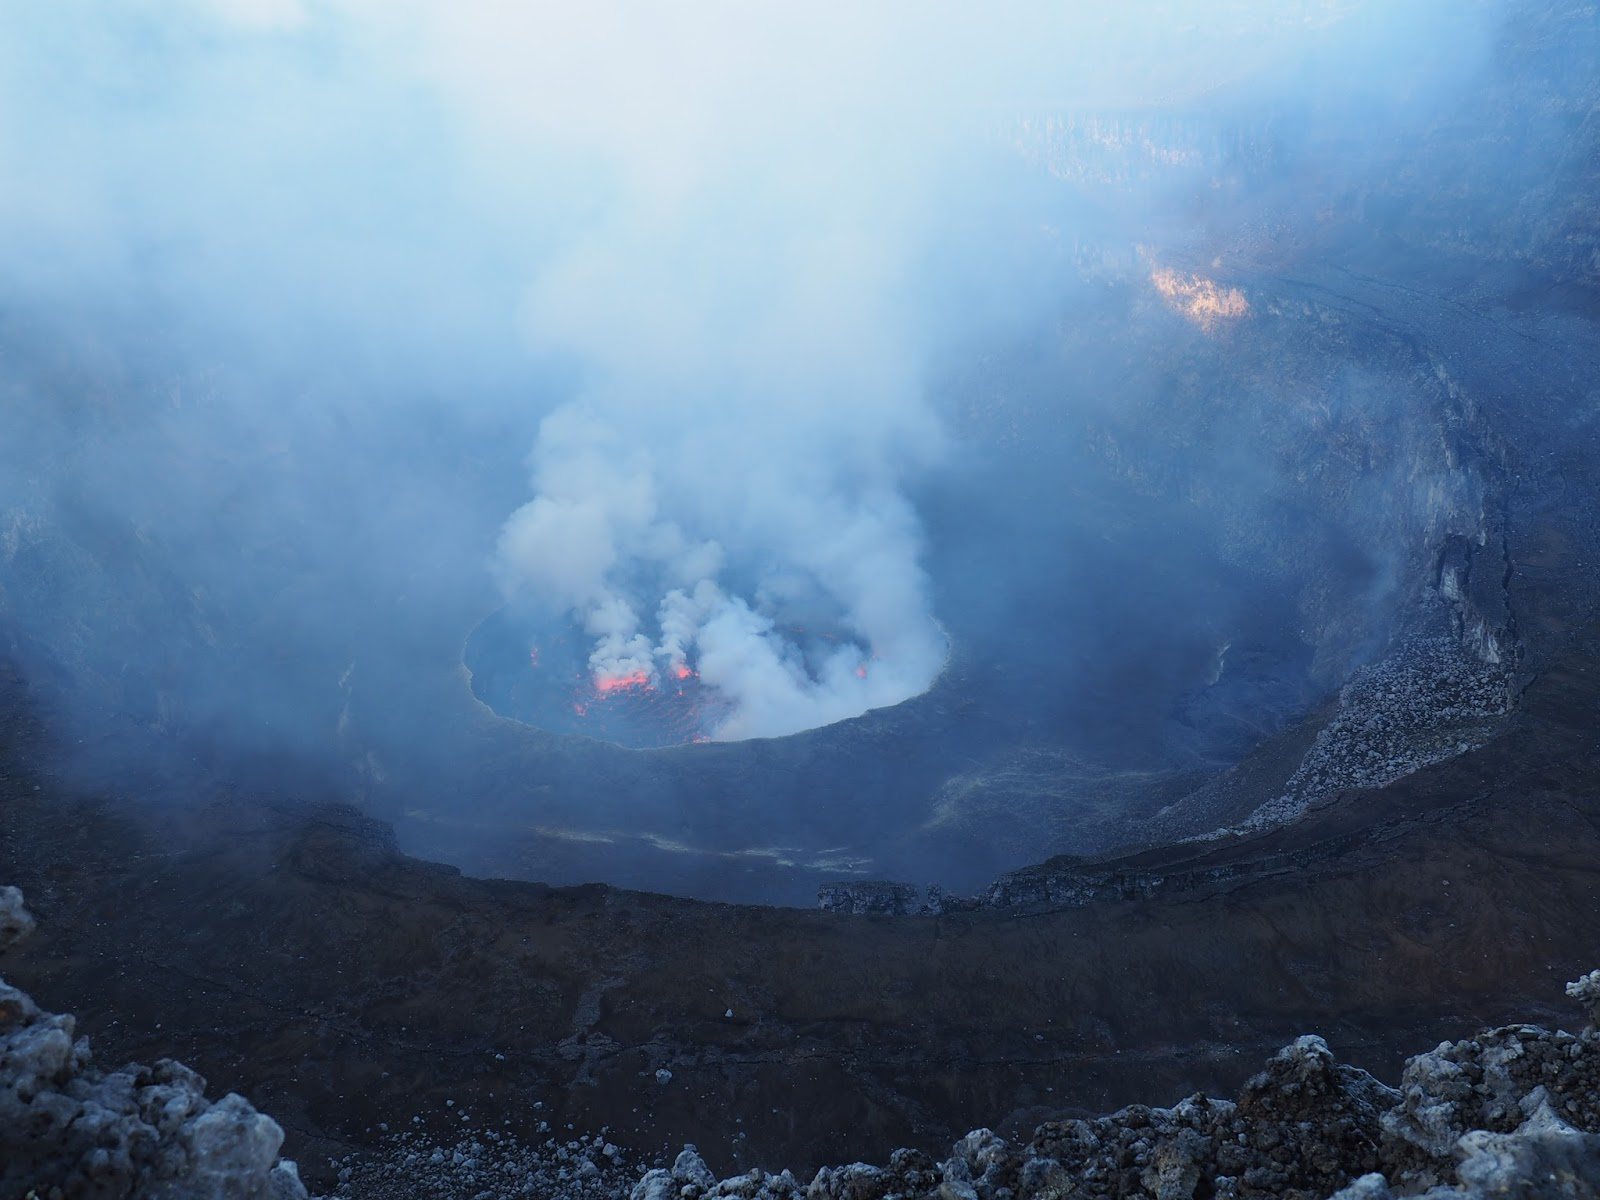 account of the eruption of a volcano in goma congo The nyiragongo volcano, situated in democratic republic of congo (15s, 293 e) near the border with rwanda and only 10 kilometers from the town of goma, is known as one of africa's most active volcanoes.